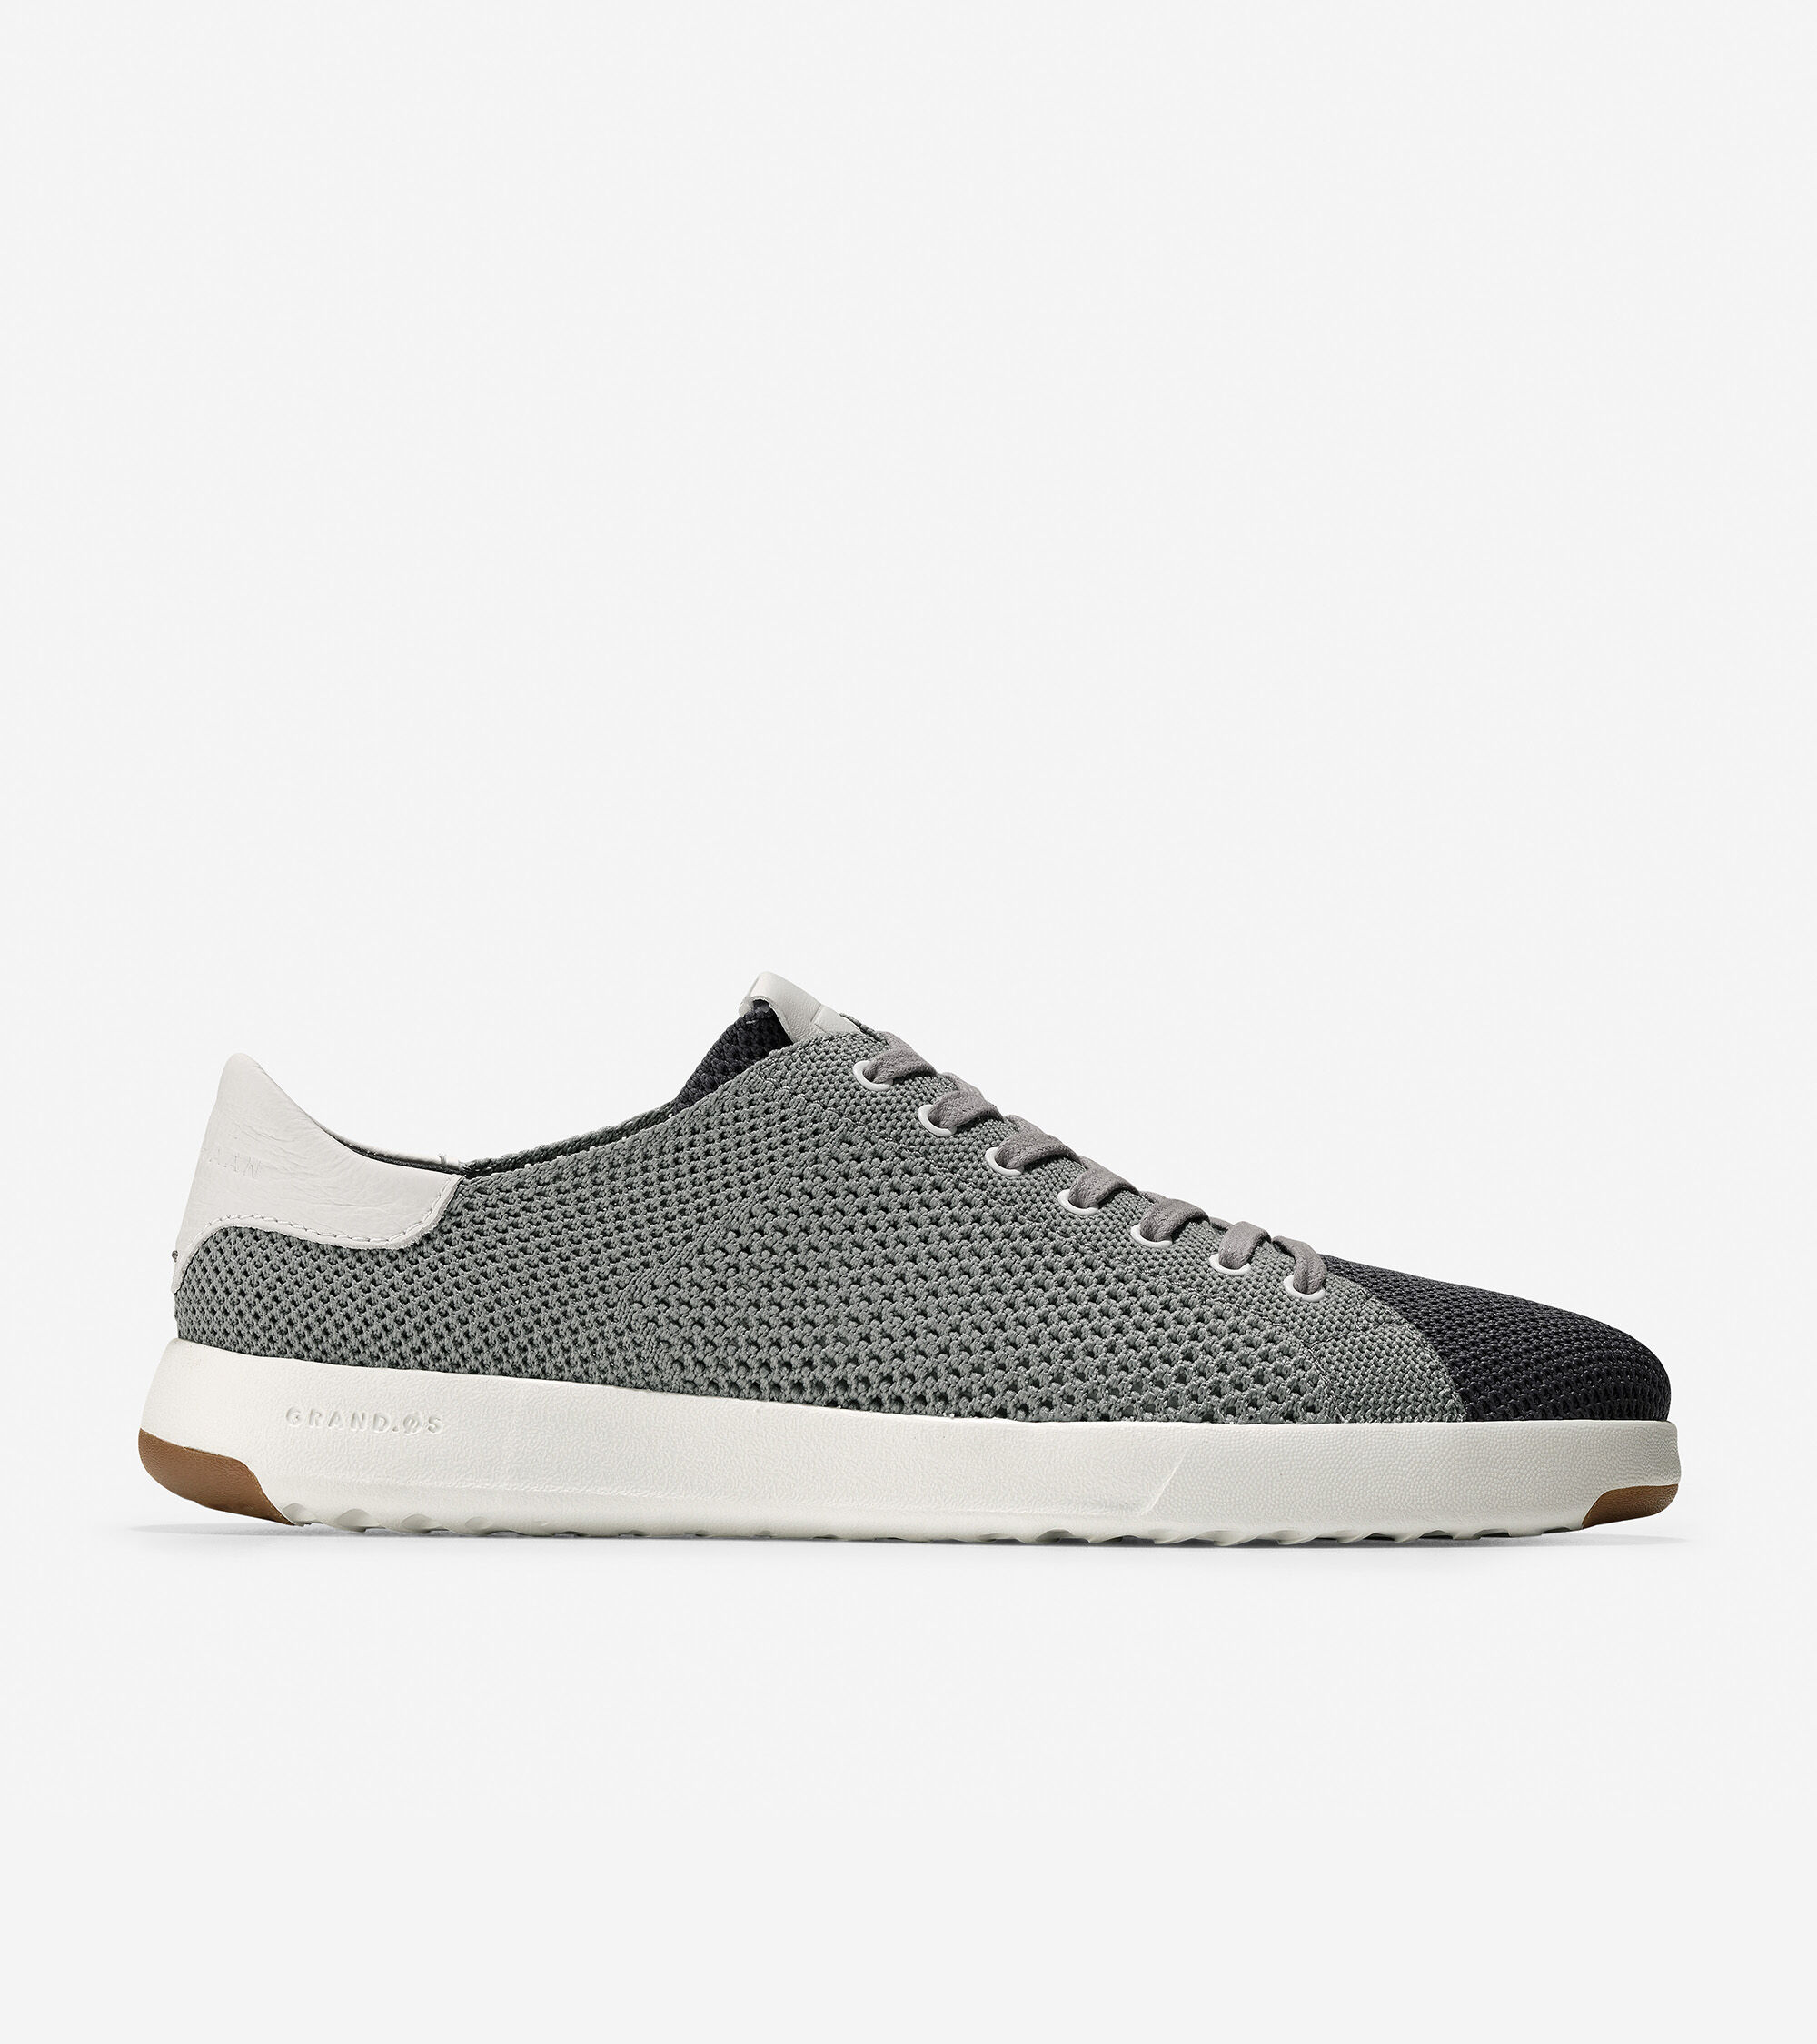 Cole Haan Grandpro Stitch Magnet Sneakers 2oJq32D